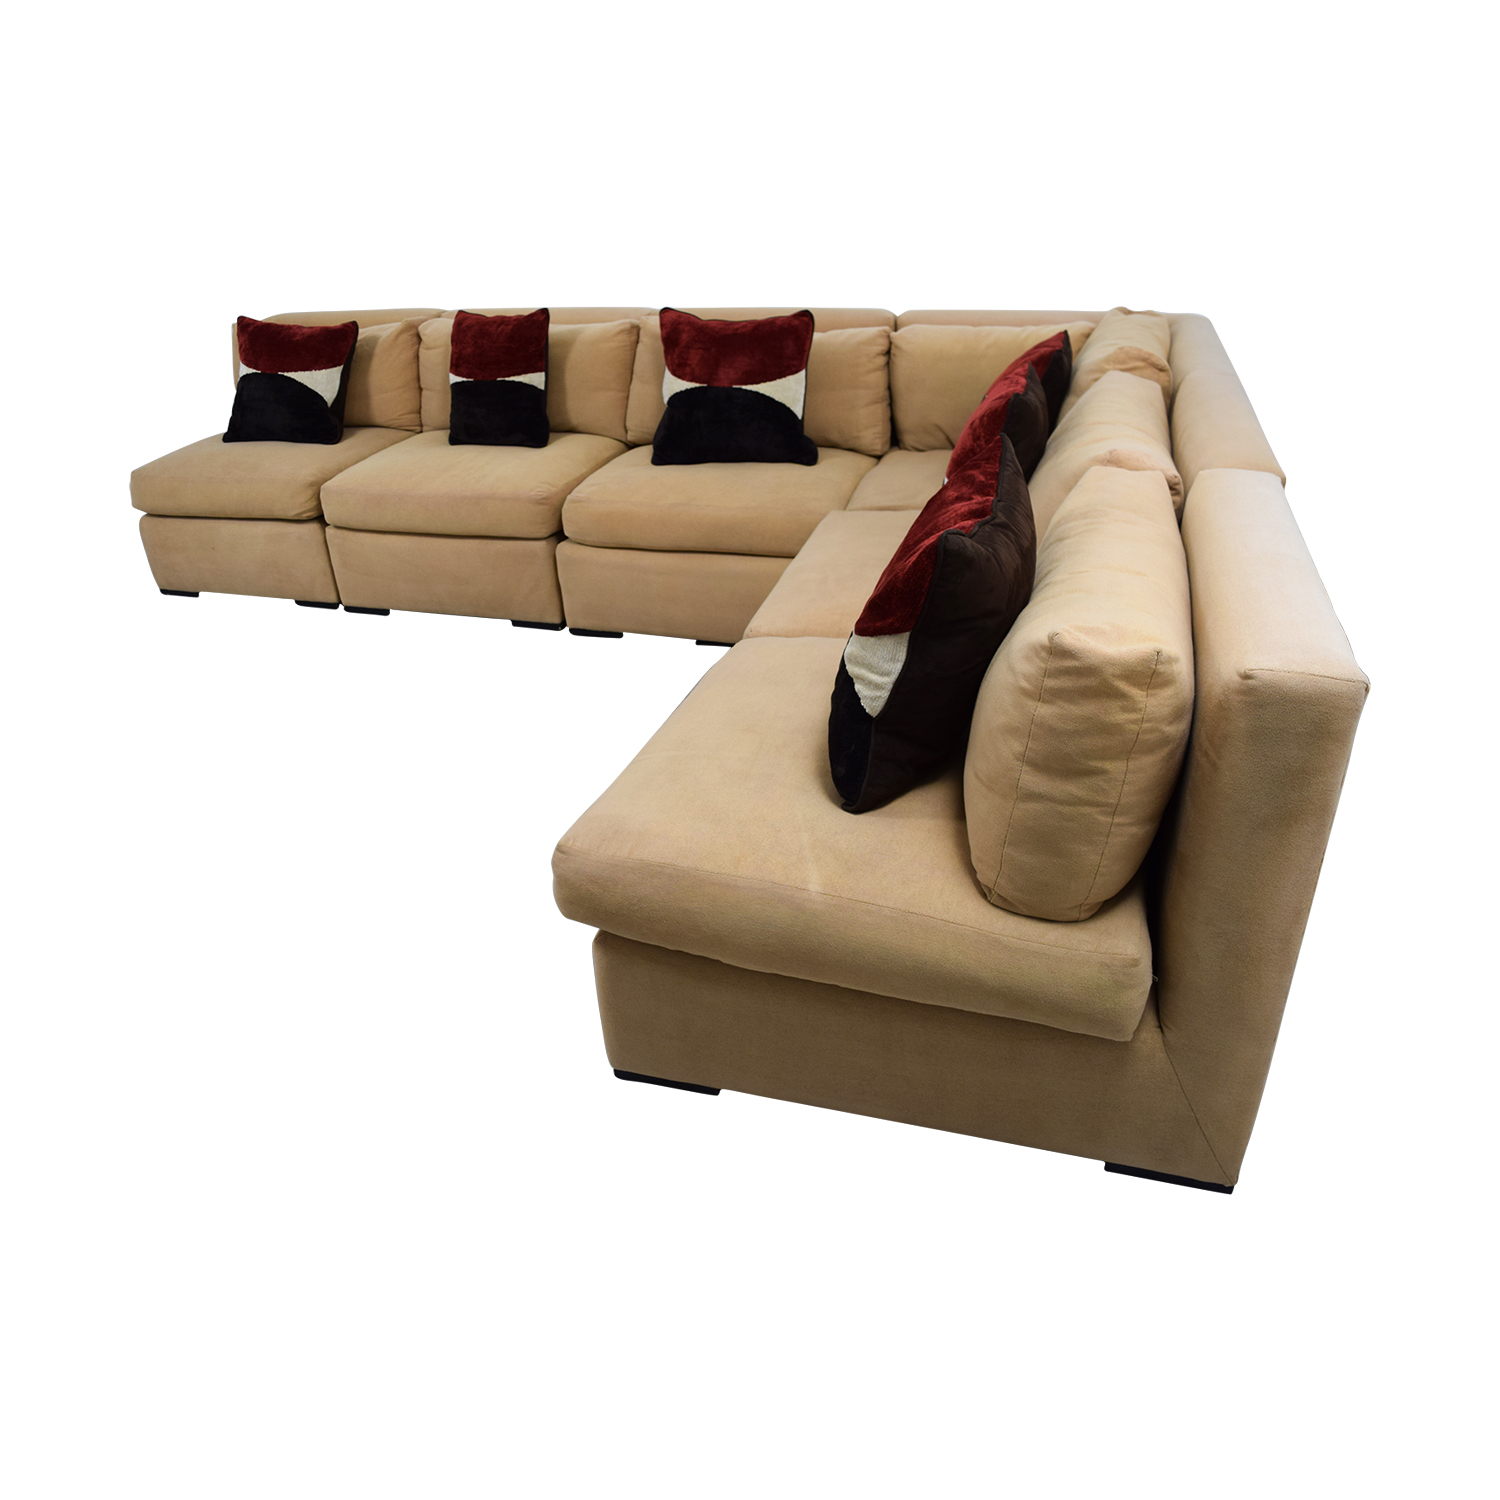 ... Kreiss Kreiss Tan L Shaped Sectional With Toss Pillows Second Hand ...